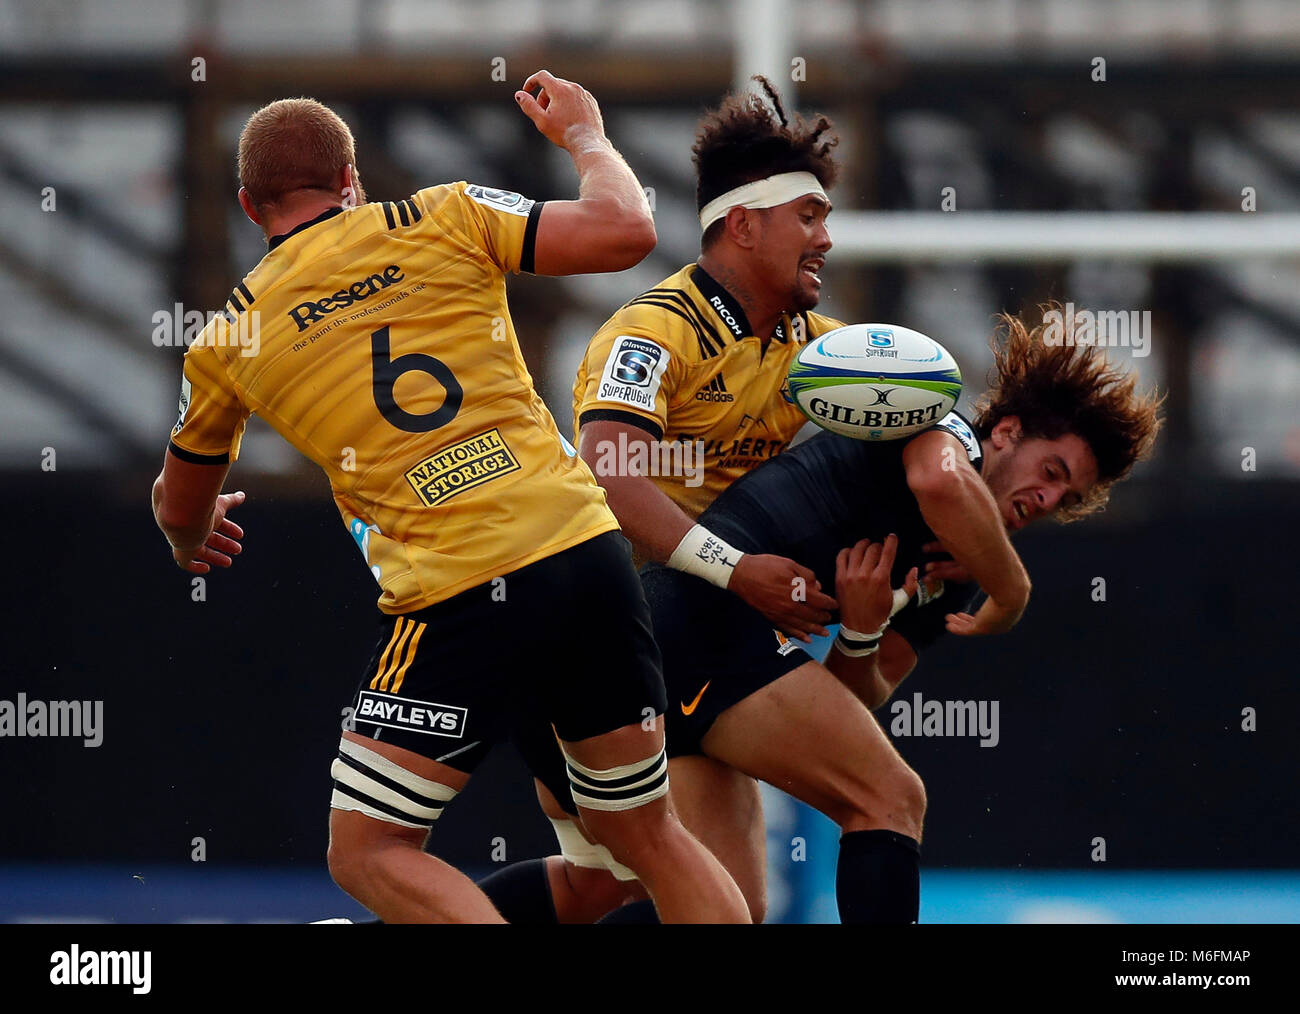 Buenos Aires, Argentina. 03rd Mar, 2018. Bautista Escurra (R) of Argentina Jaguars vies for the ball with Ardie - Stock Image